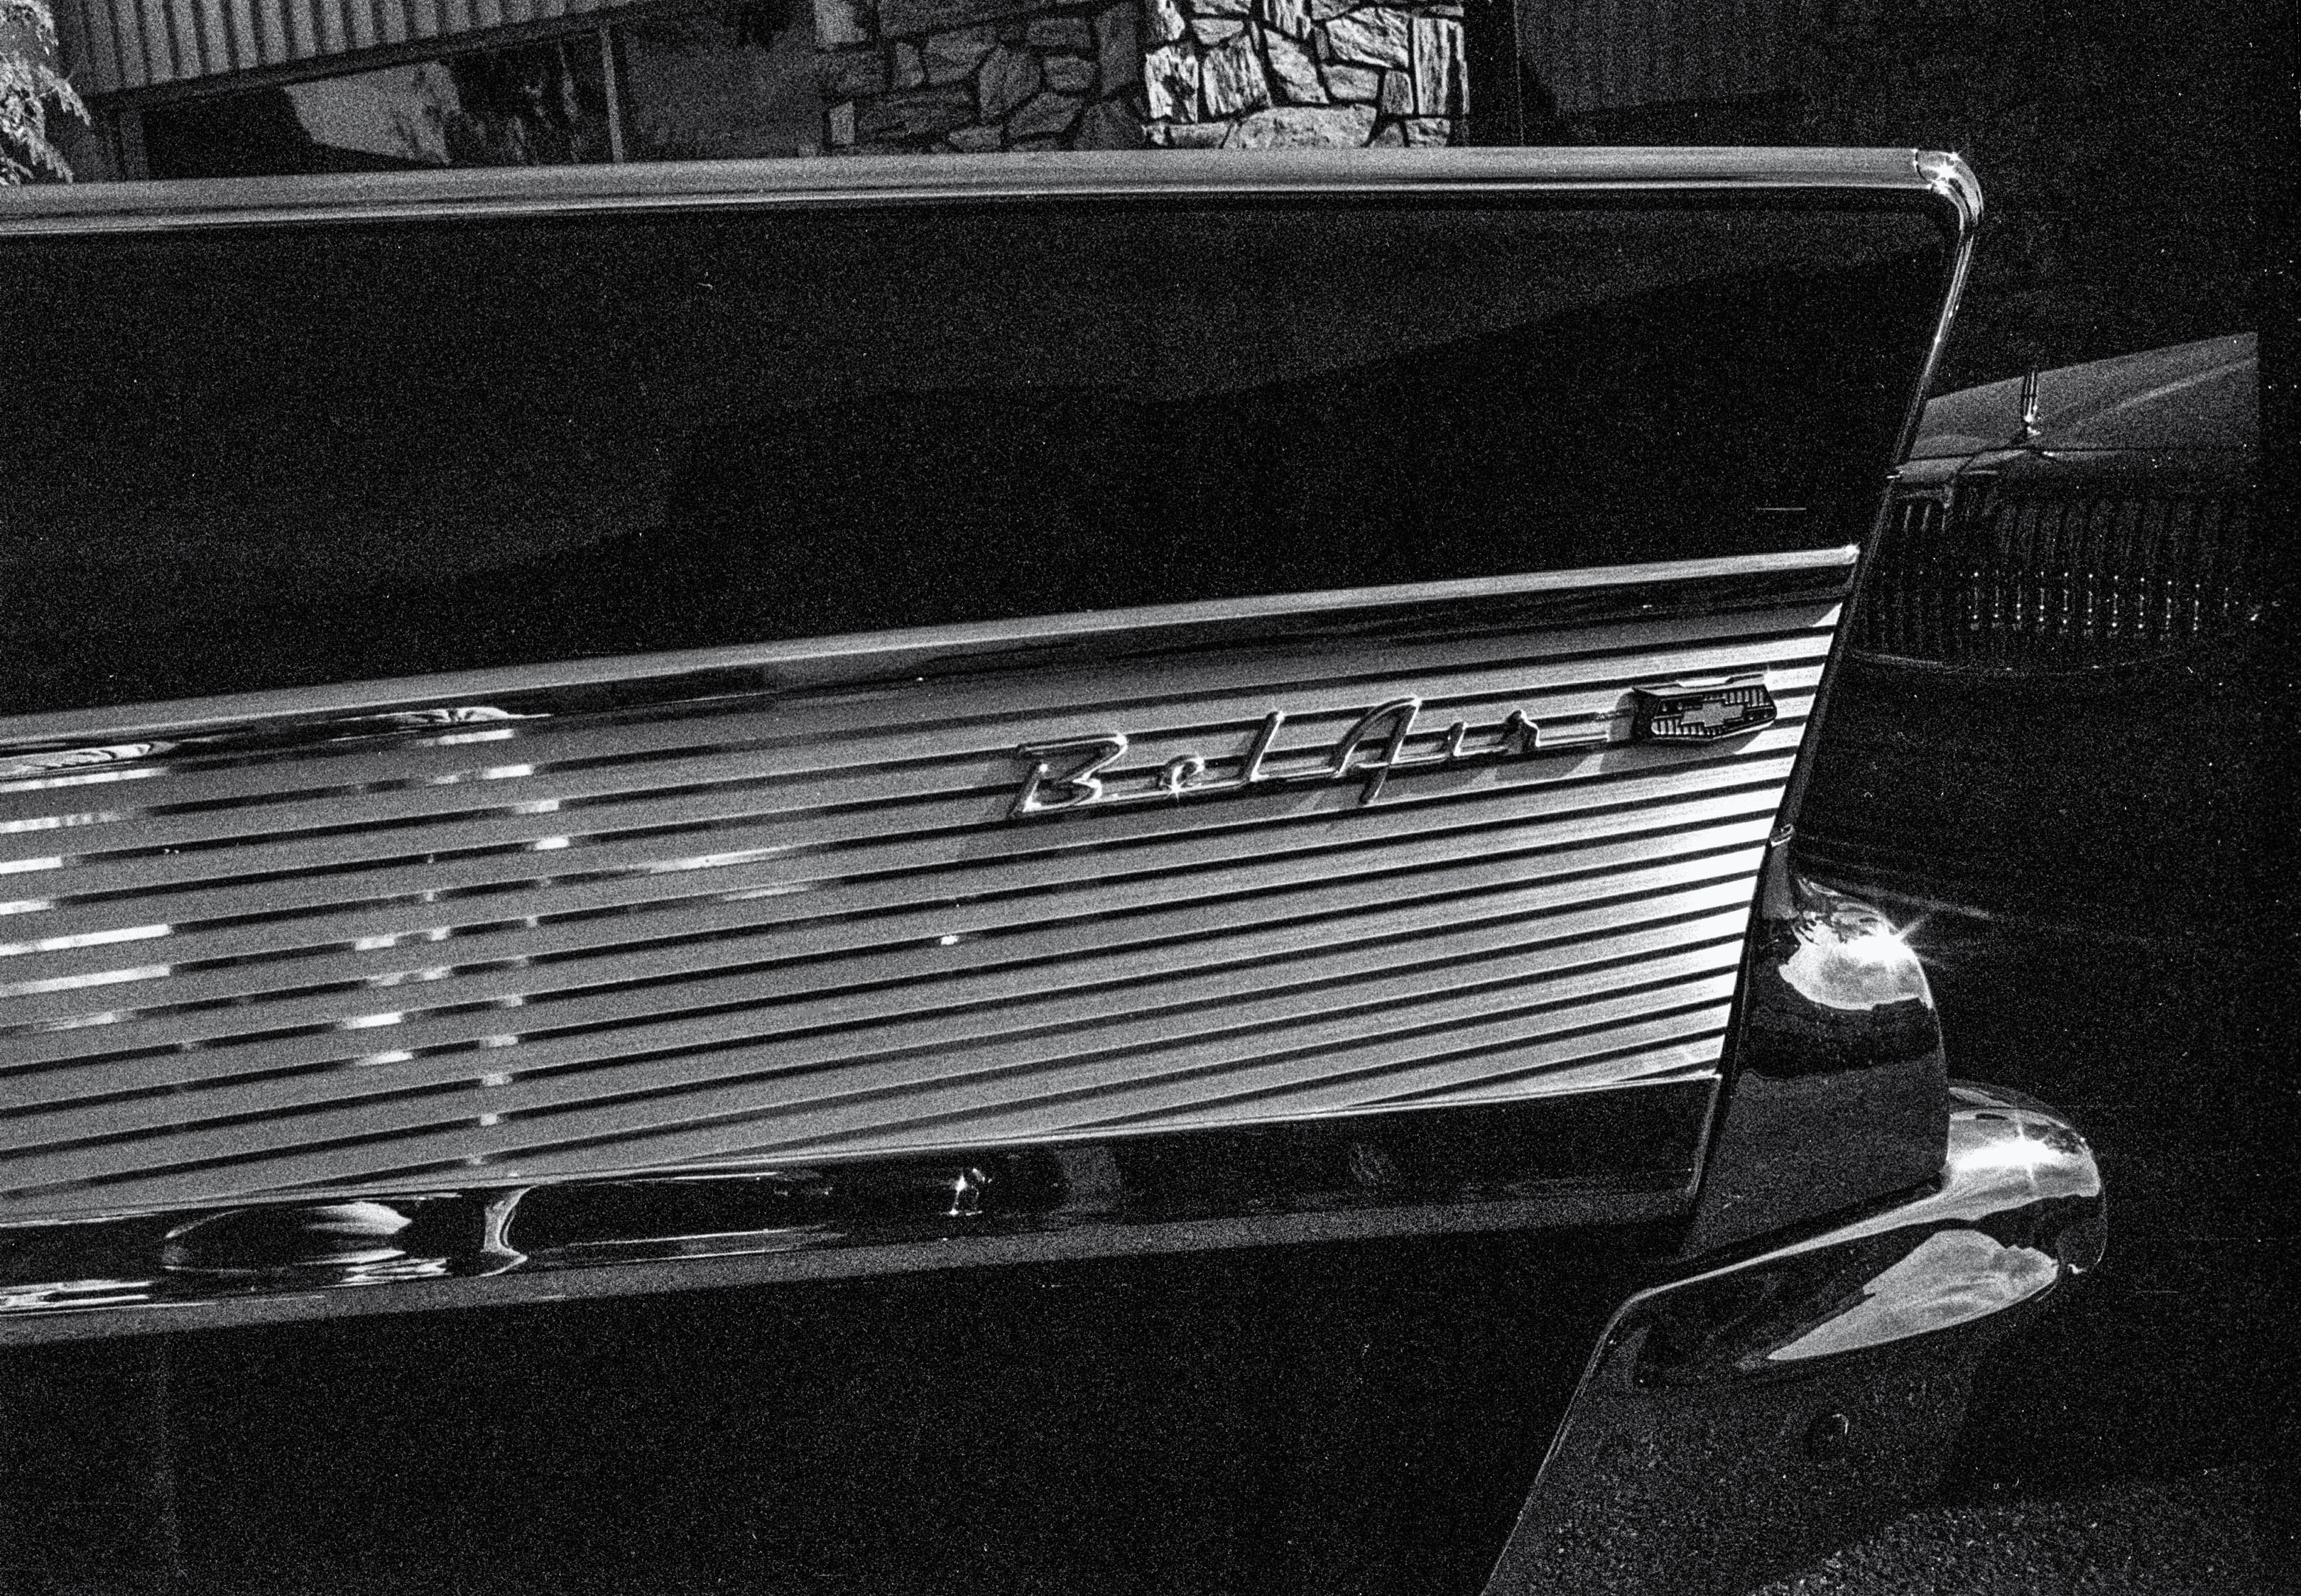 Classic Chevy Bel Air Fin